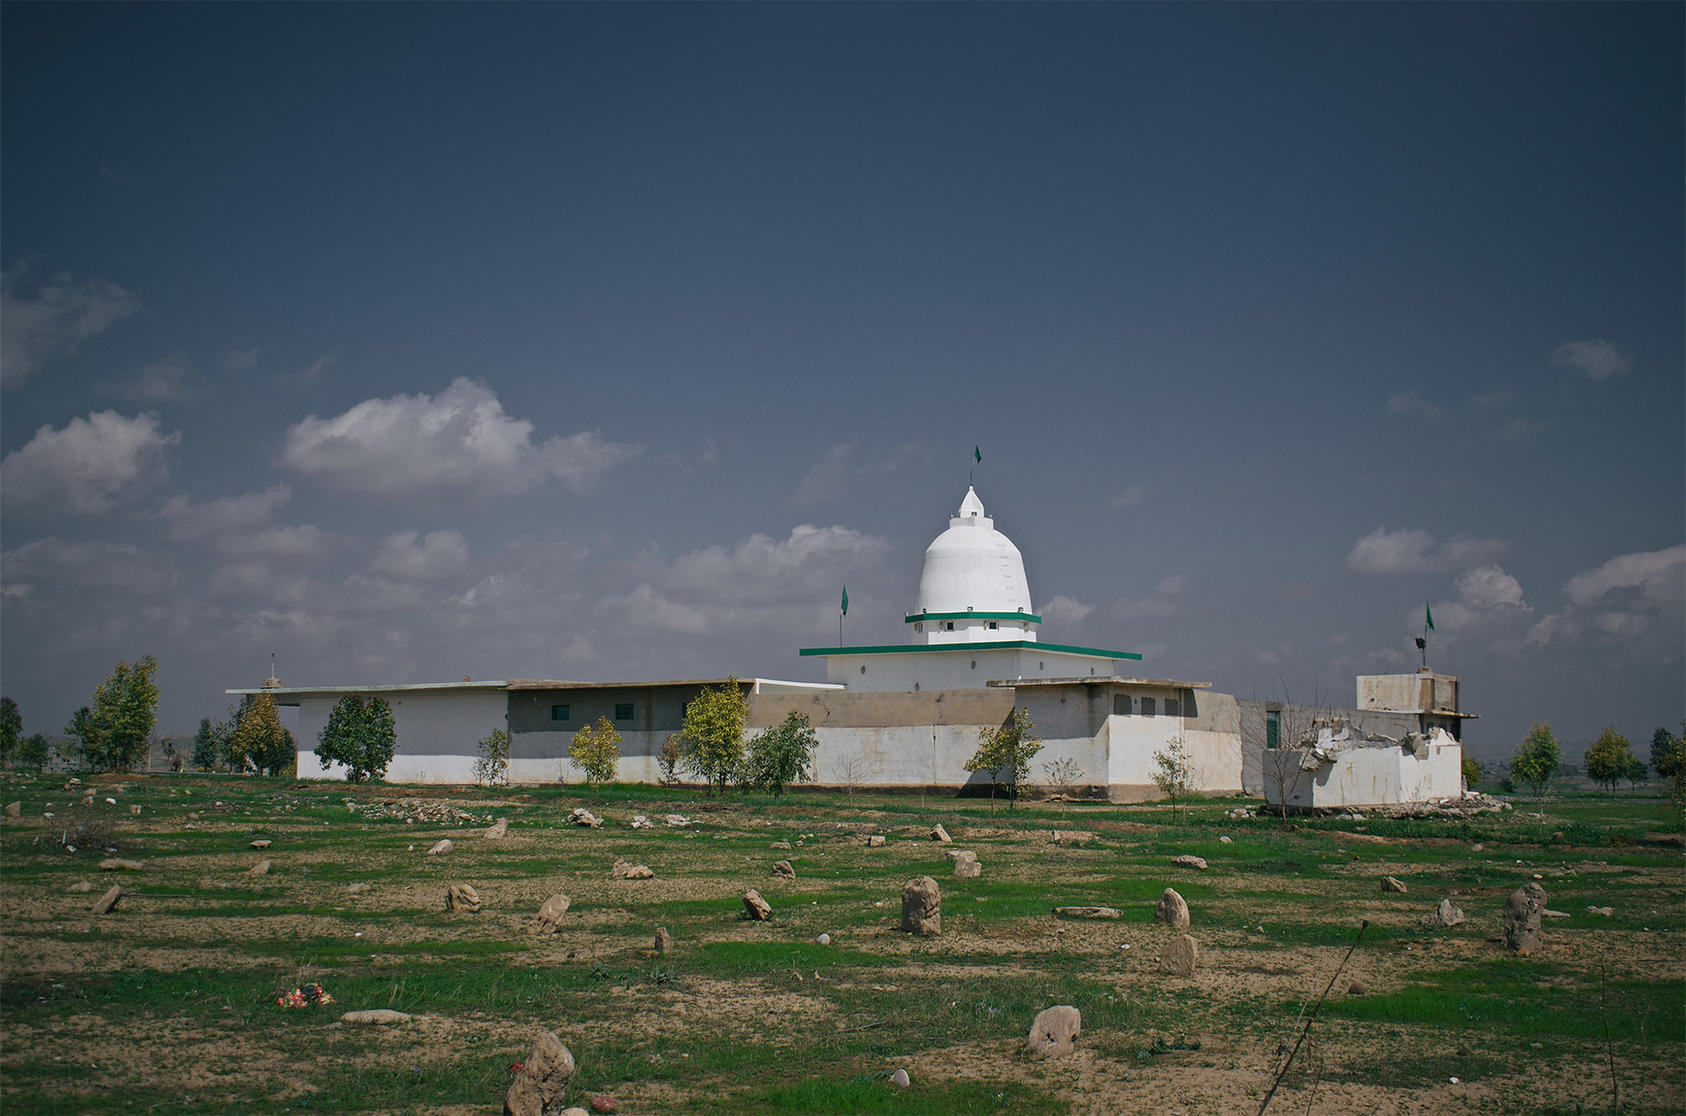 This Kakai religious shrine, called Shah Hayas, in the Iraqi village of Wardik was destroyed by ISIS in 2014 and rebuilt in 2017. (Levi Clancy/Wikimedia Commons)